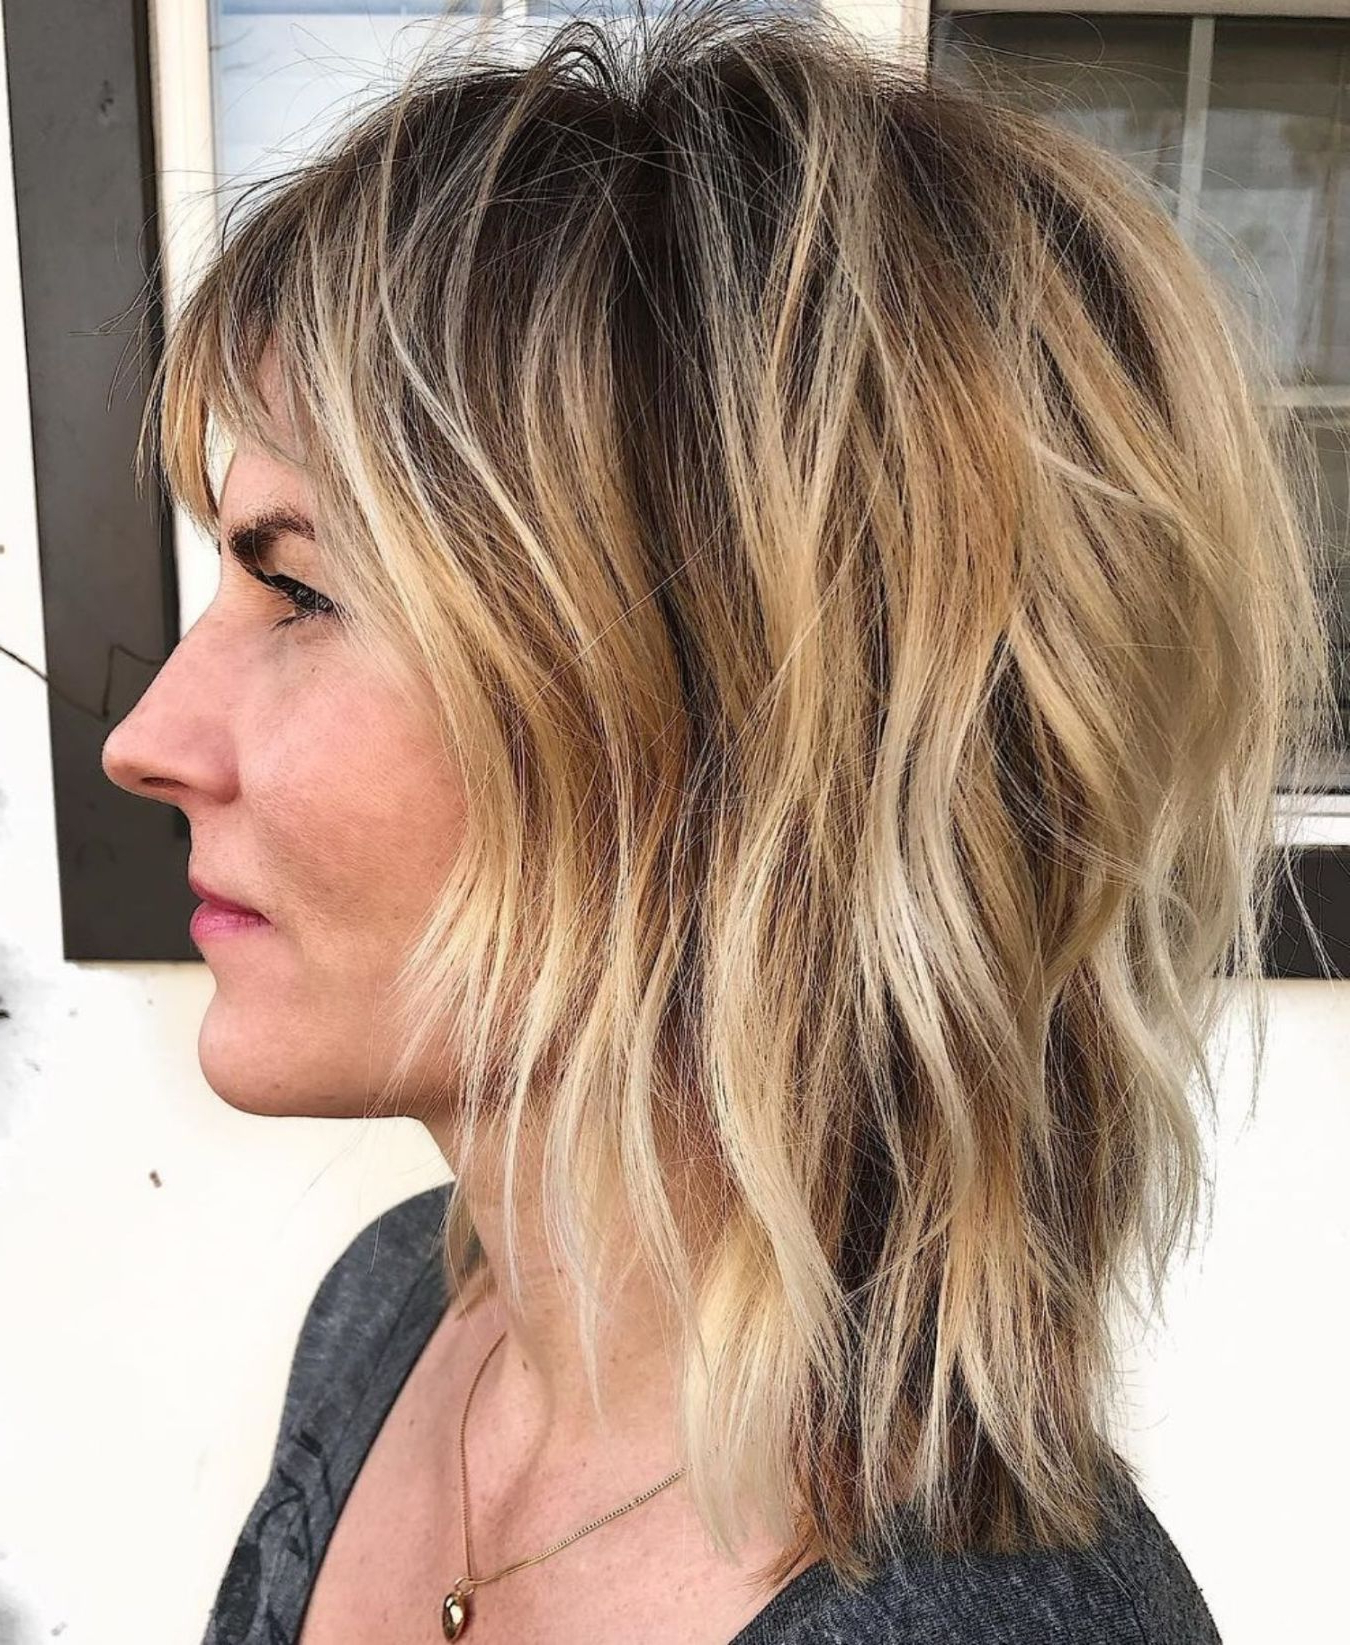 Hair In 2018 Feathered Pixie Shag Haircuts With Highlights (View 13 of 20)